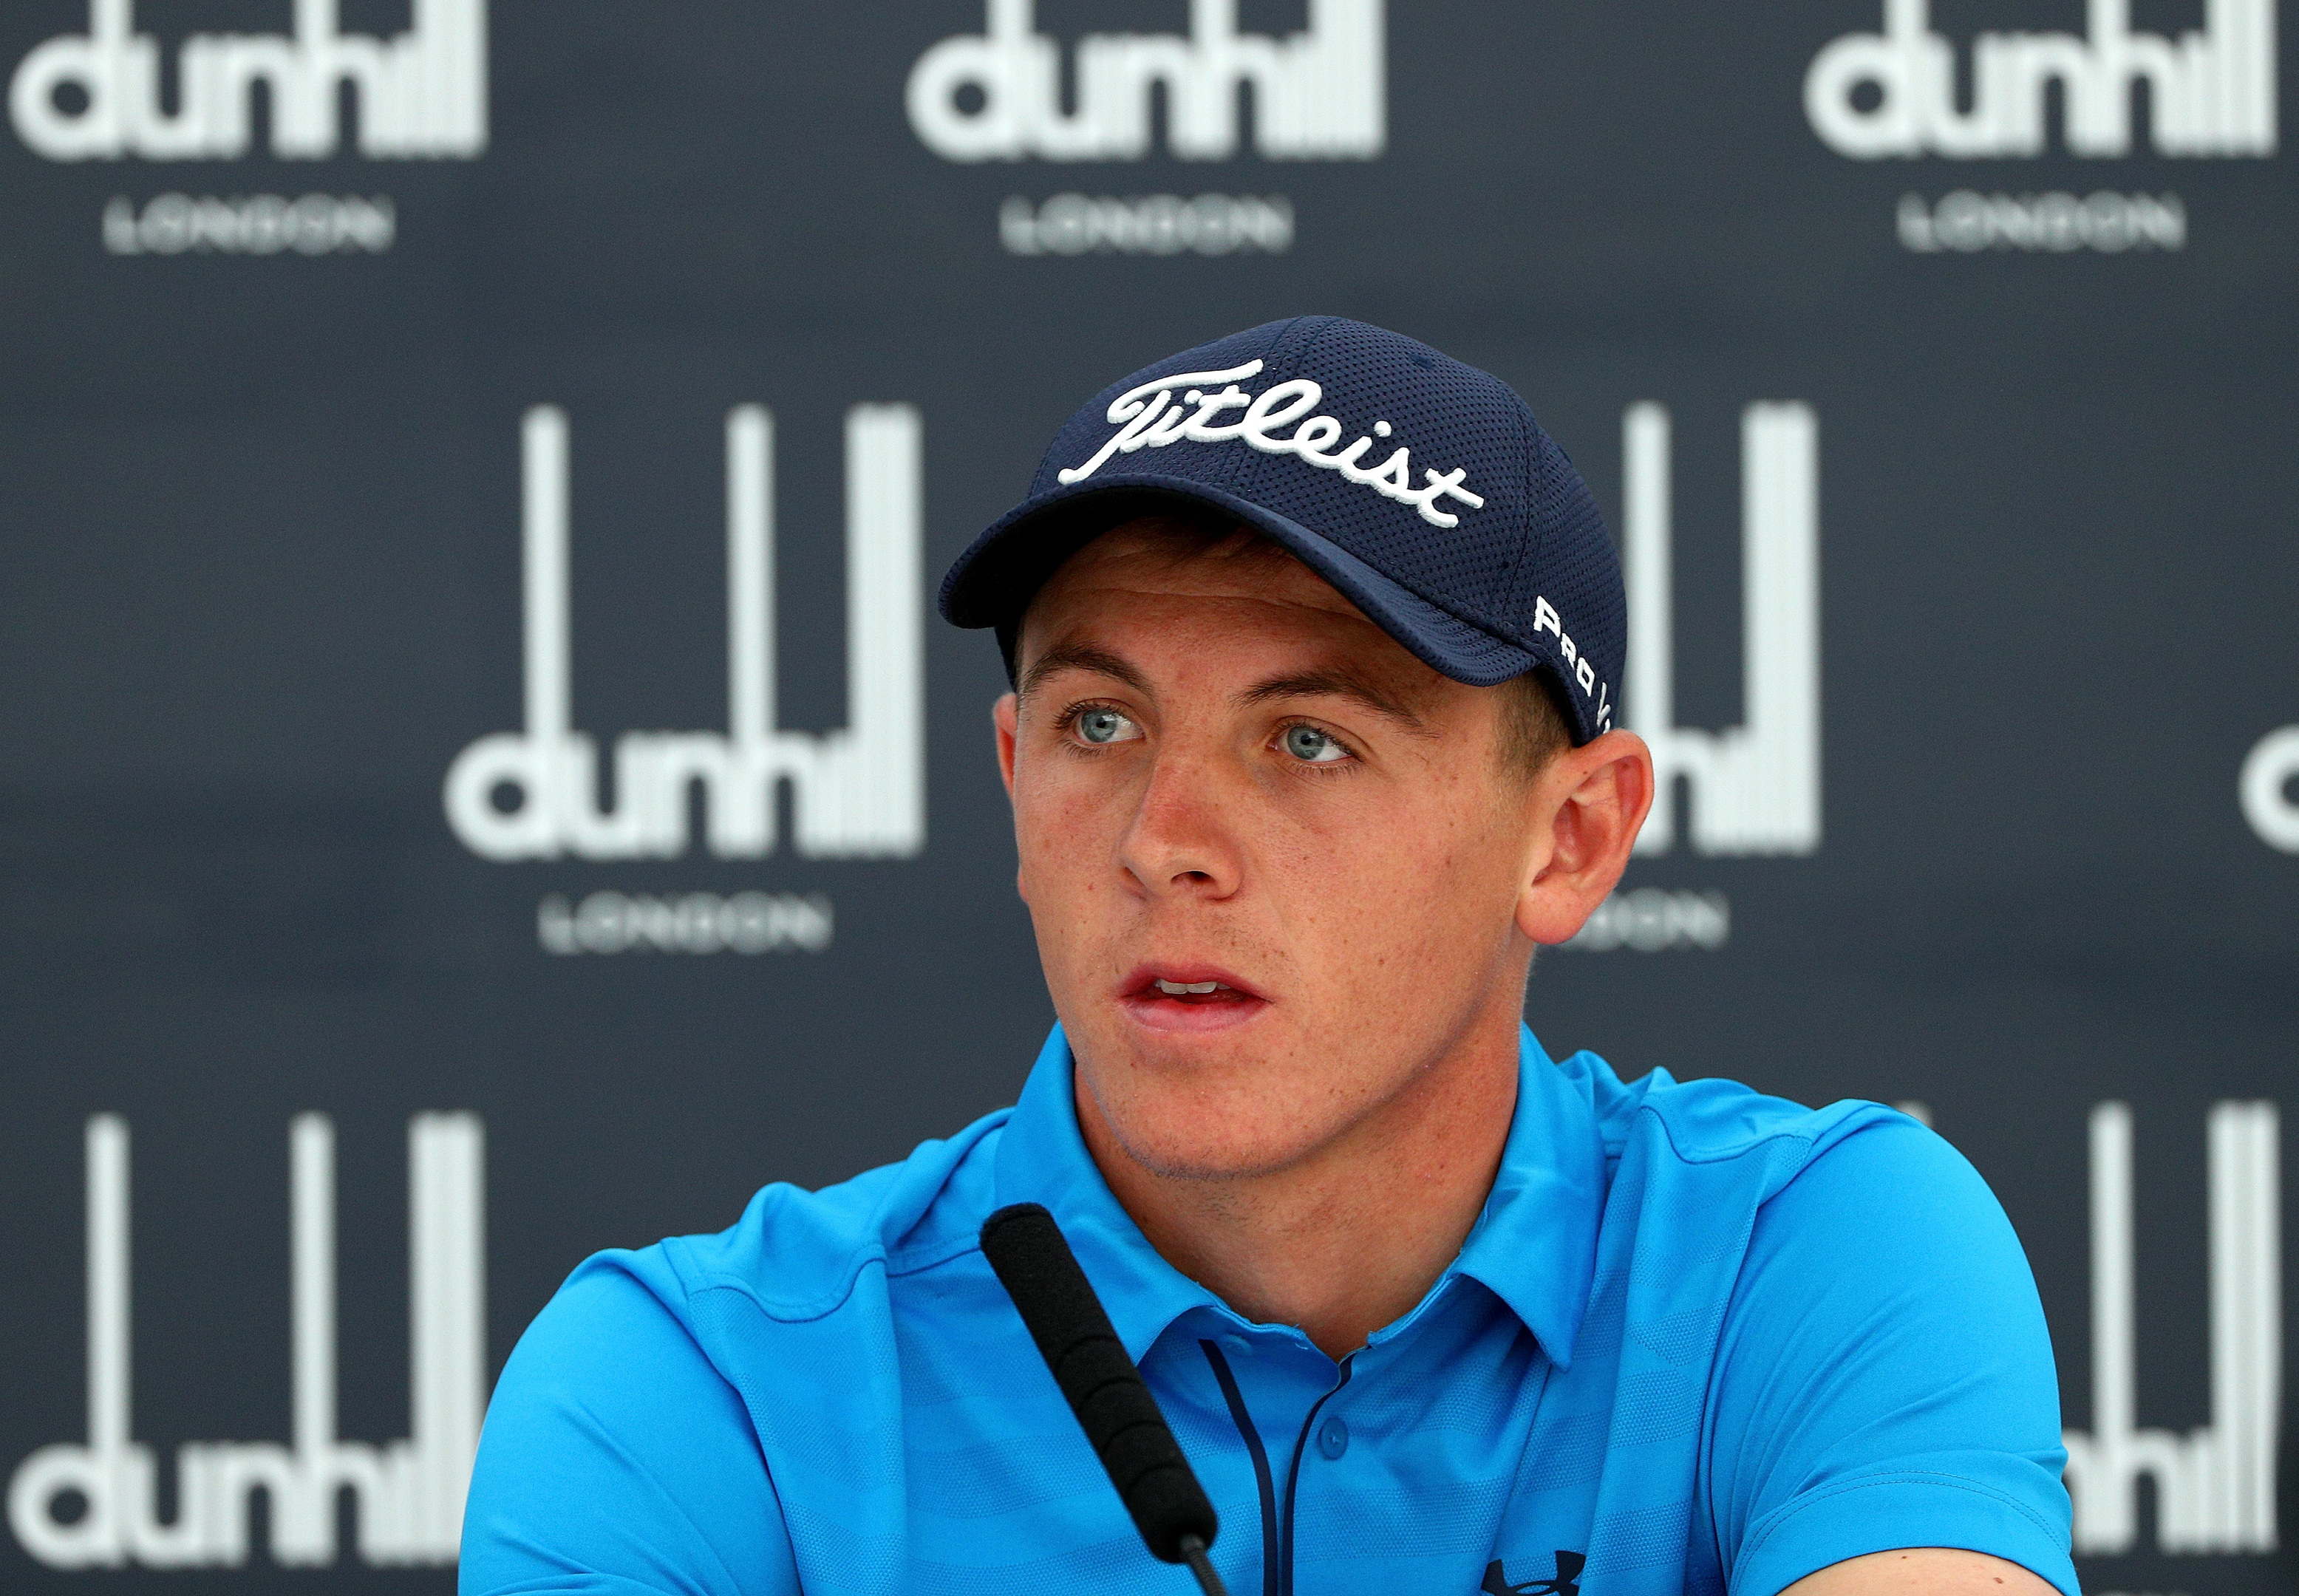 Grant Forrest had a highly creditable debut as a pro at the Dunhill Links.